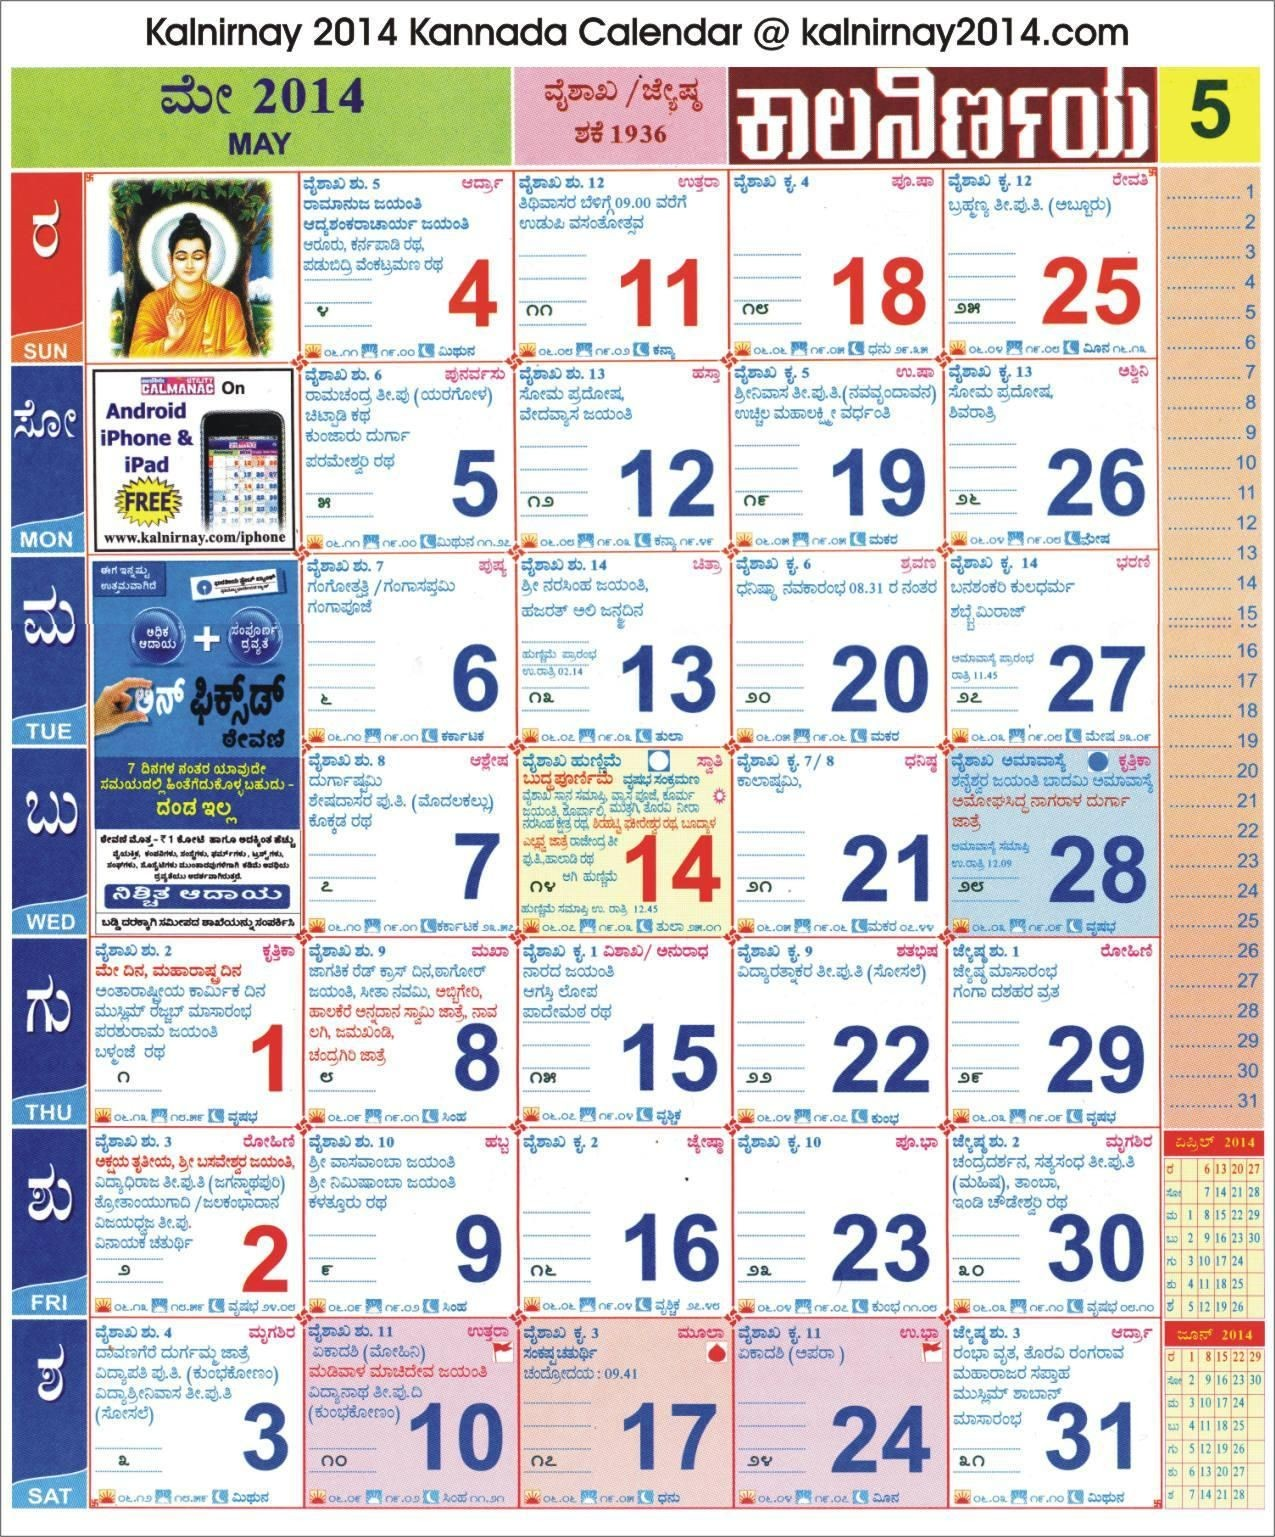 March 2018 Calendar Kalnirnay Más Recientes May 2014 Kannada Kalnirnay Calendar Of March 2018 Calendar Kalnirnay Más Recientes Pin by 4khd On August 2018 Calendar Printable